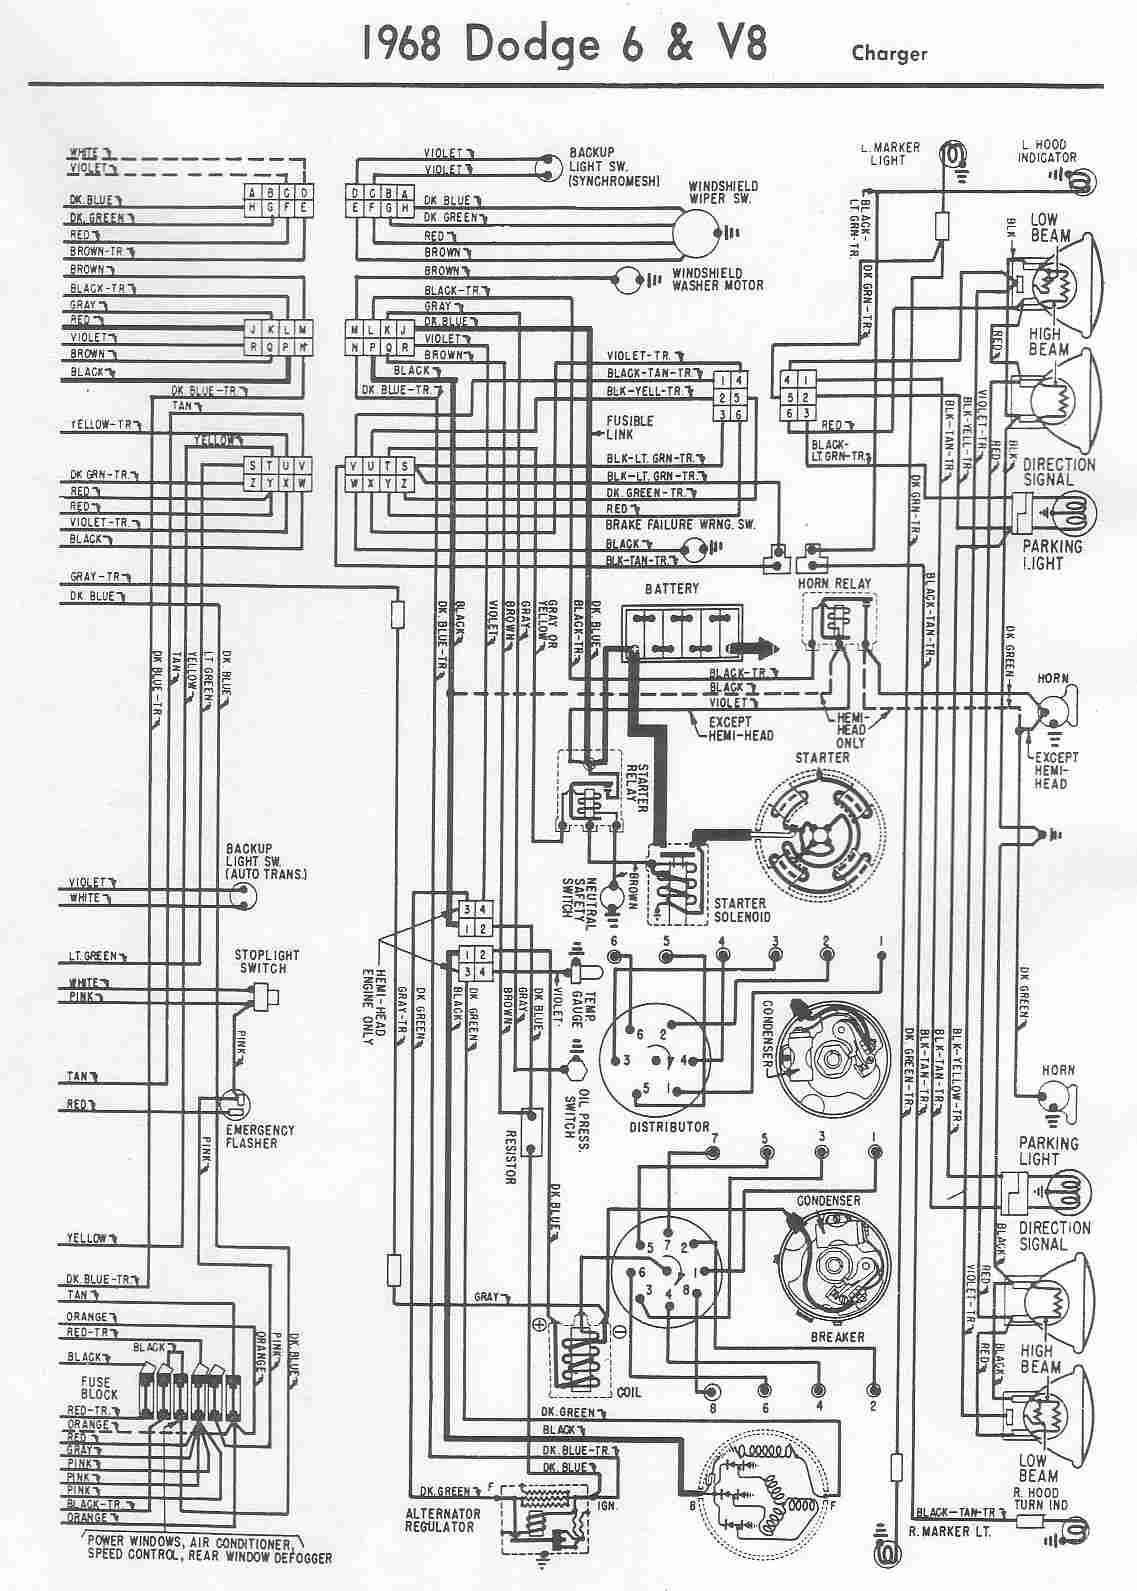 charger electrical wiring diagram of 1968 dodge 6 and v8?t=1508404771 dodge car manuals, wiring diagrams pdf & fault codes 1970 dodge coronet wiring diagram at crackthecode.co